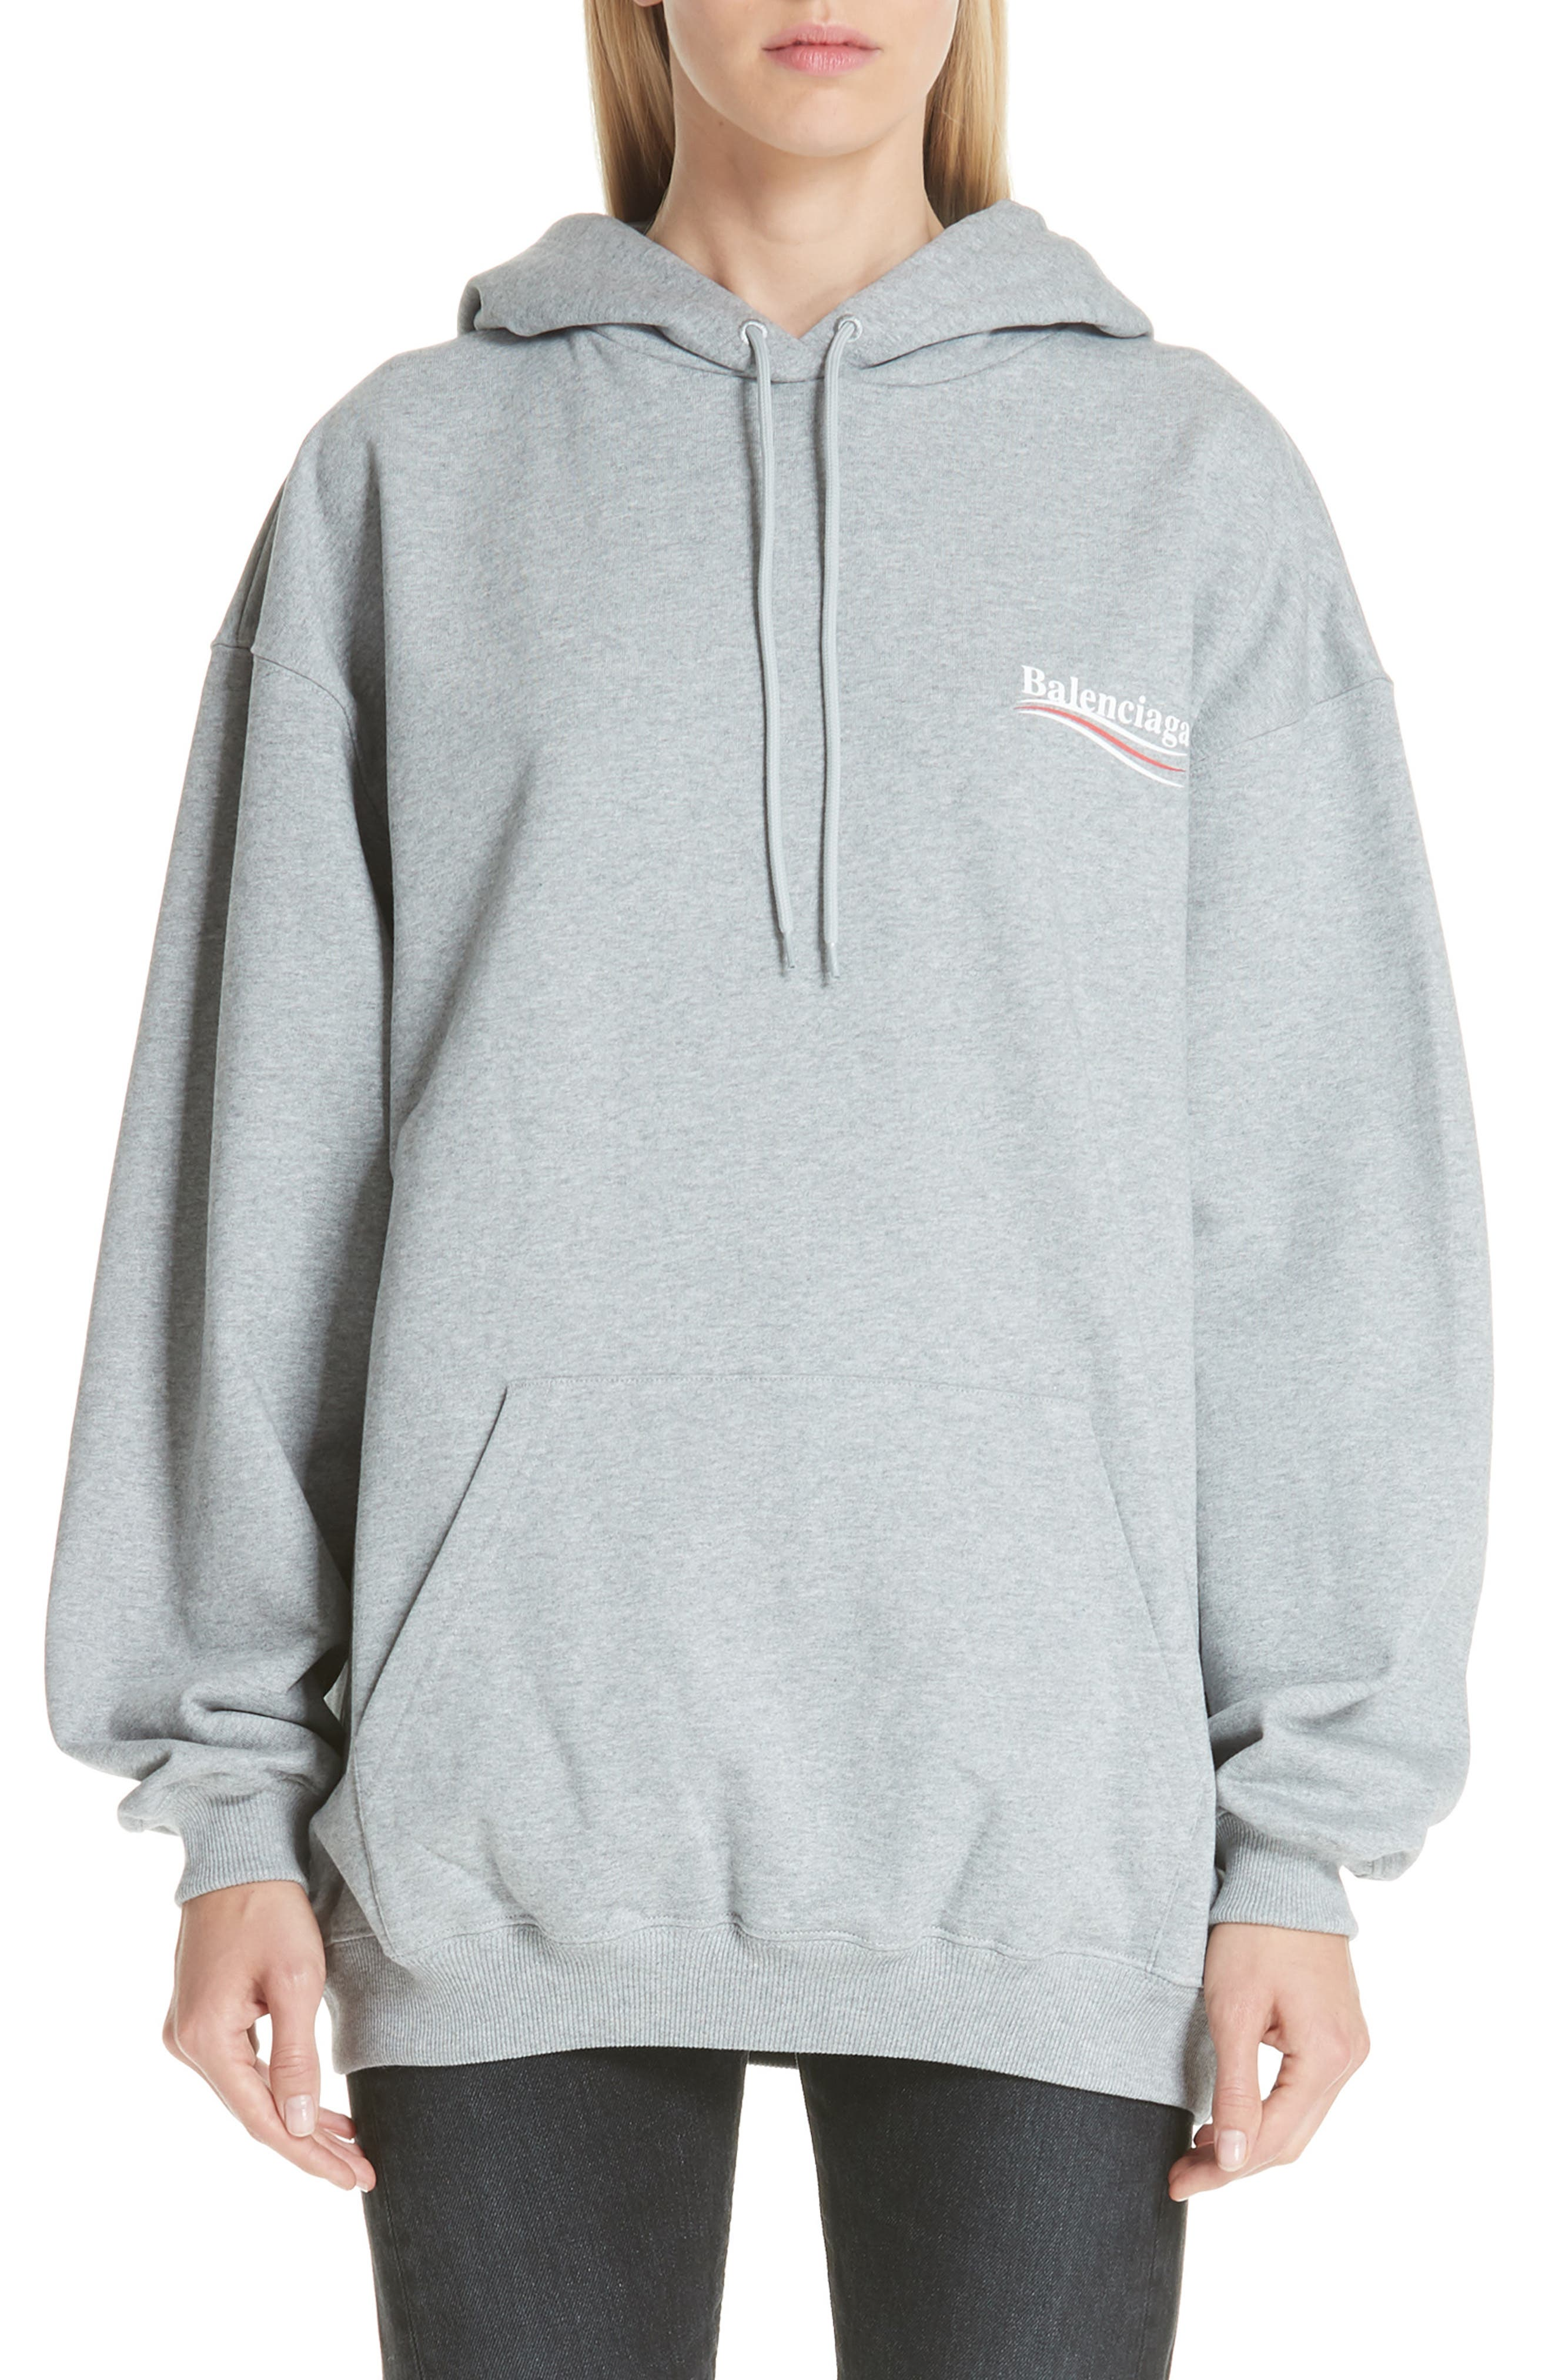 Campaign Logo Hoodie,                         Main,                         color, 020